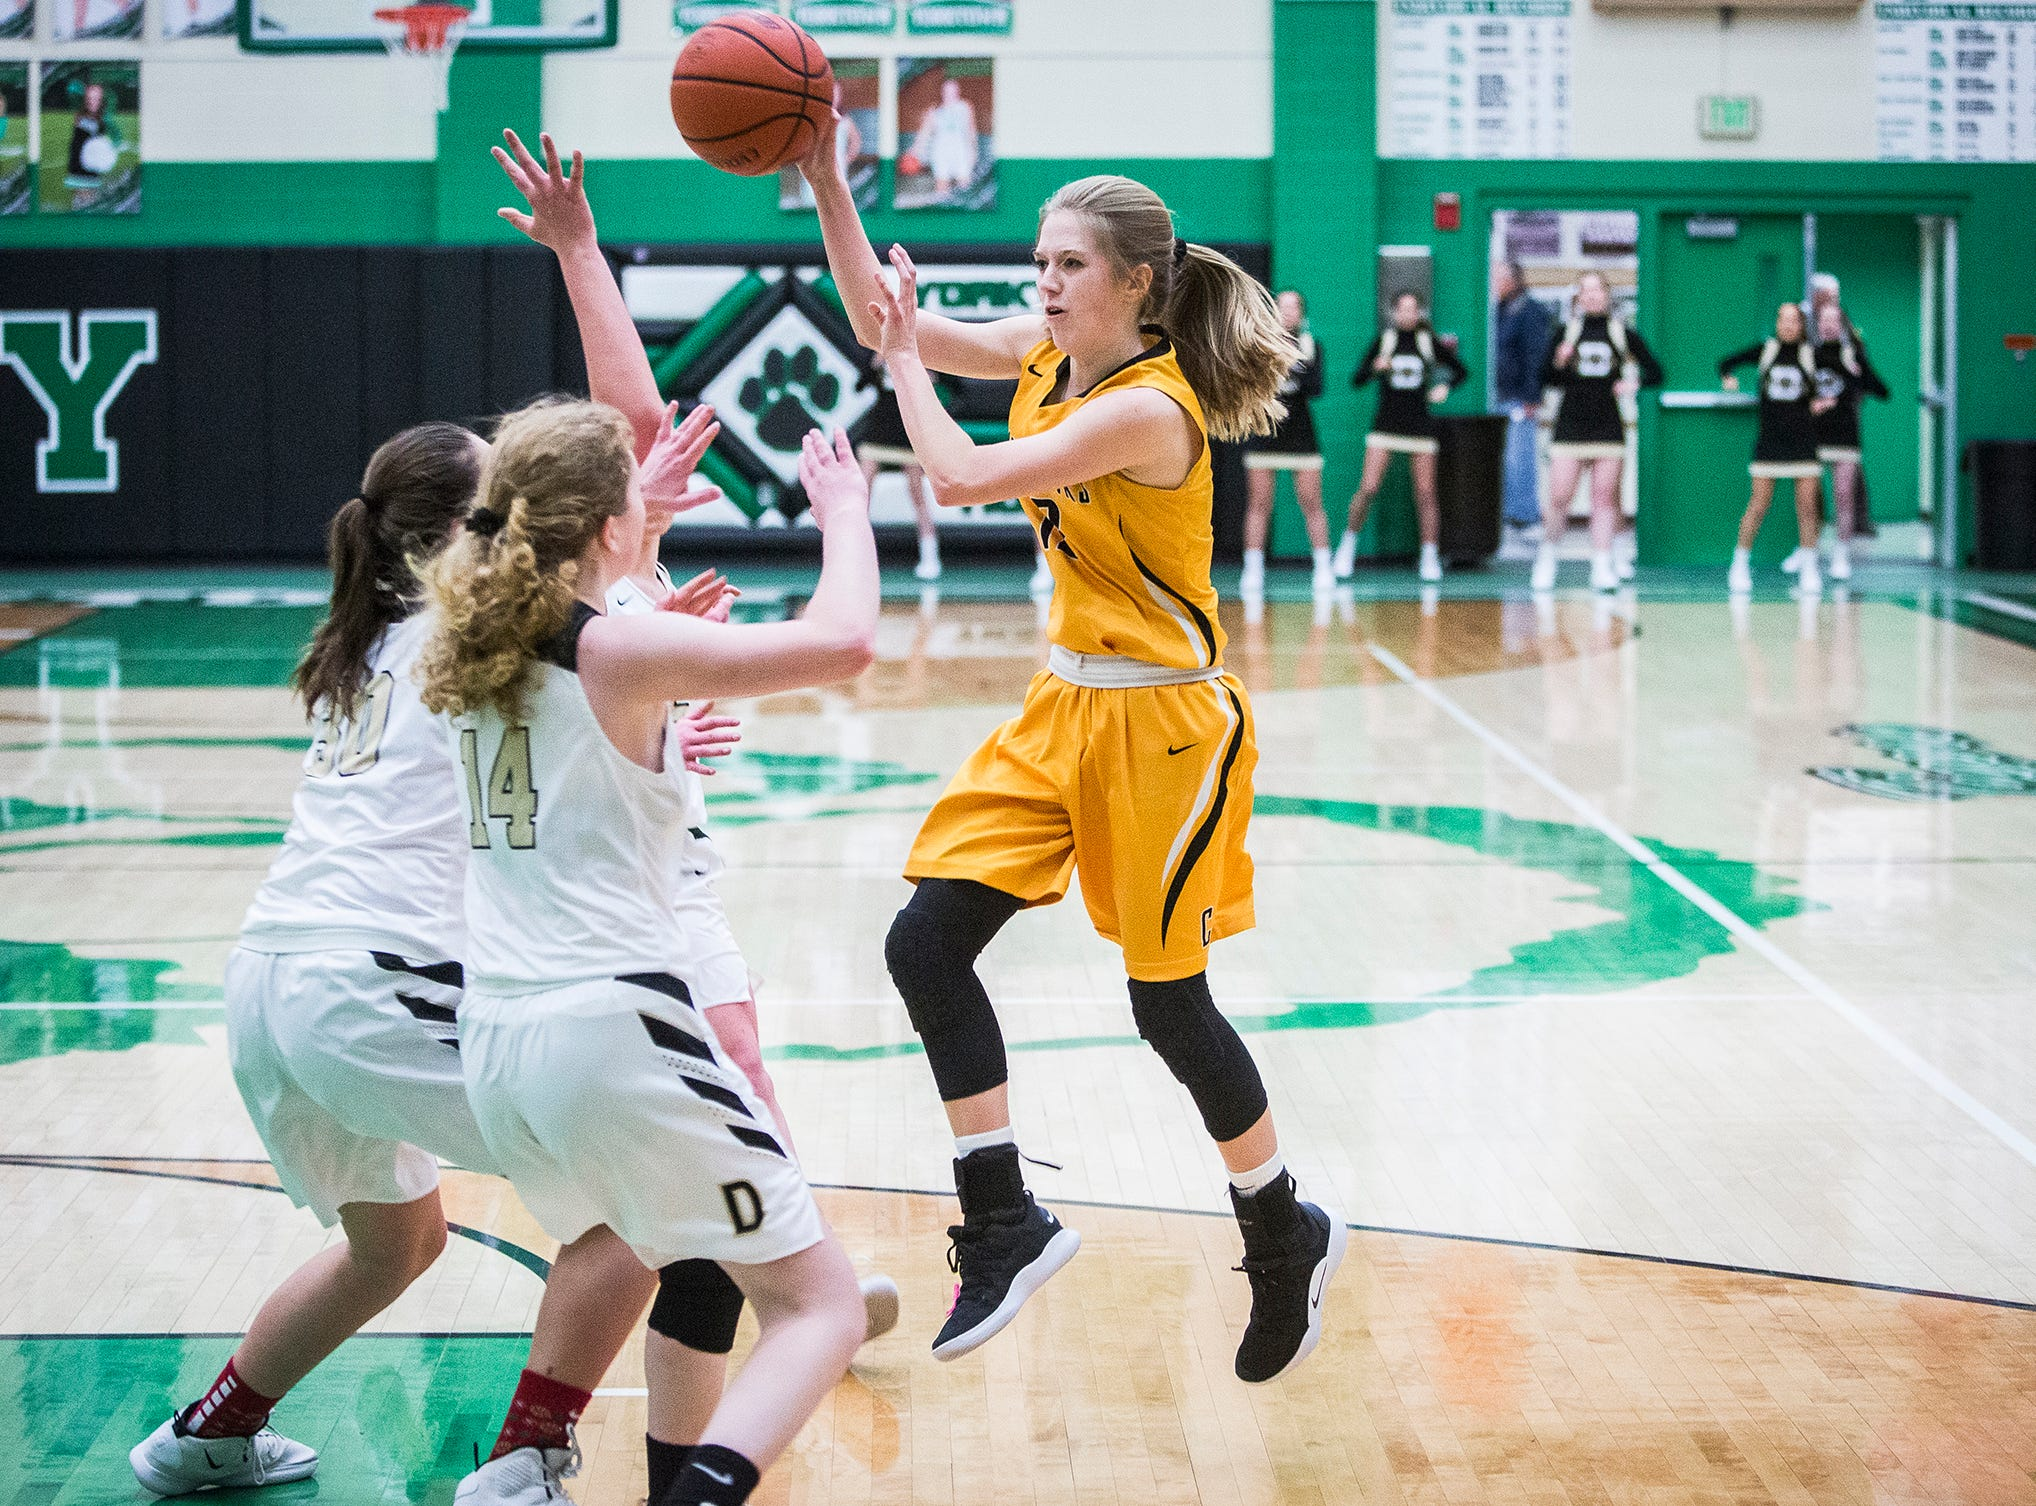 Cowan faces off against Daleville during the Delaware County Basketball Tournament at Yorktown High School Tuesday, Jan. 8, 2019.